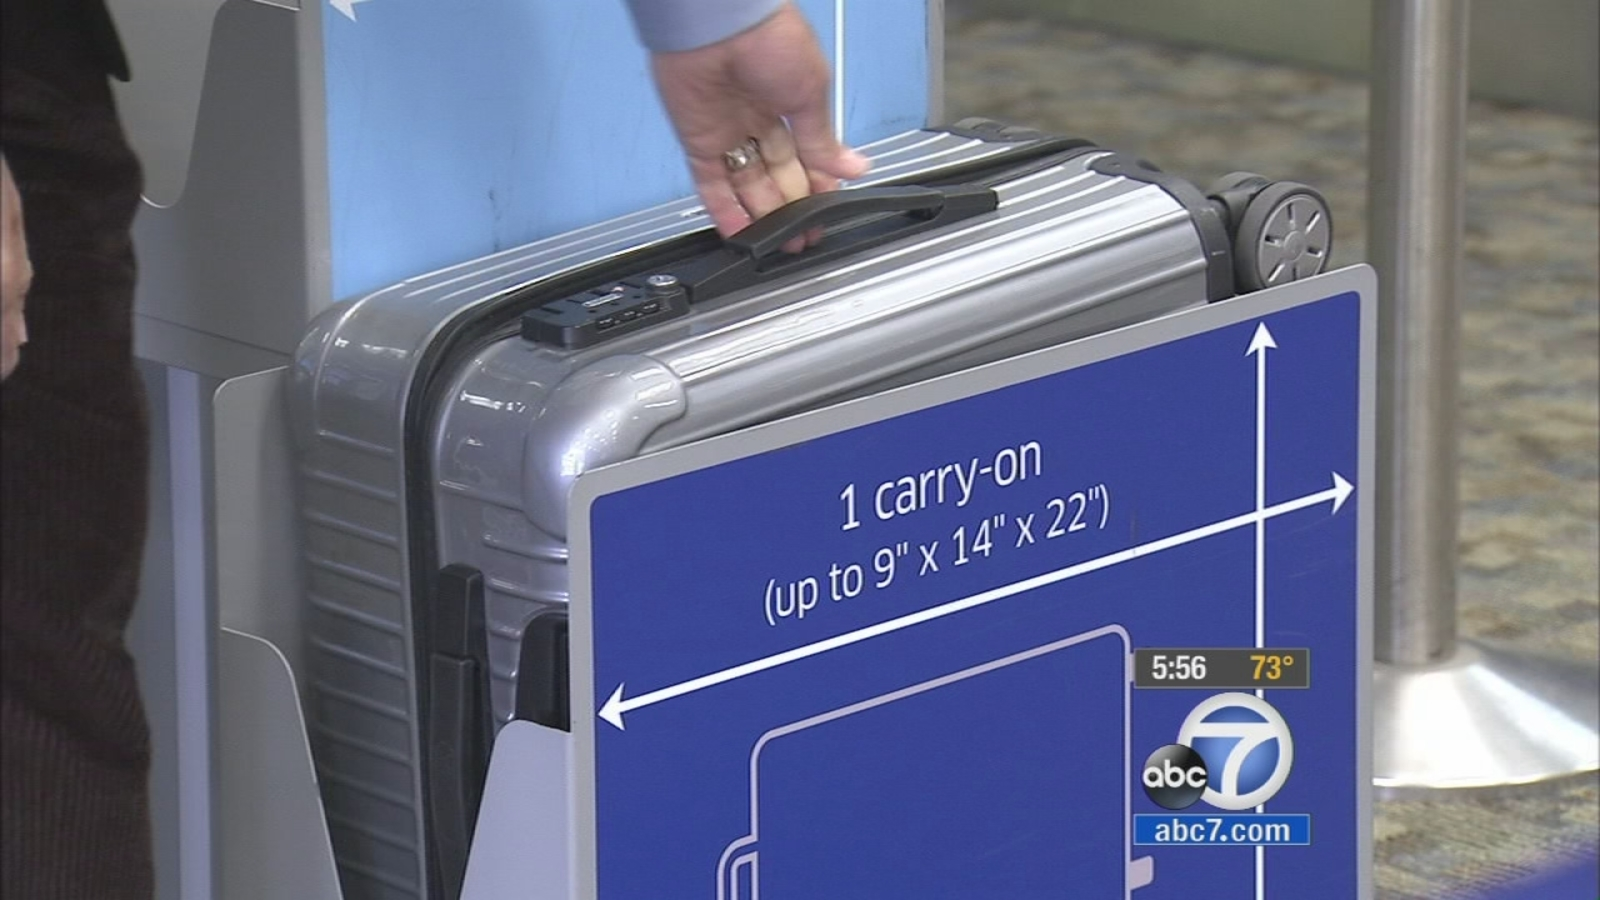 Carry On Luggage Sizes Confuse Travelers Abc7 Com